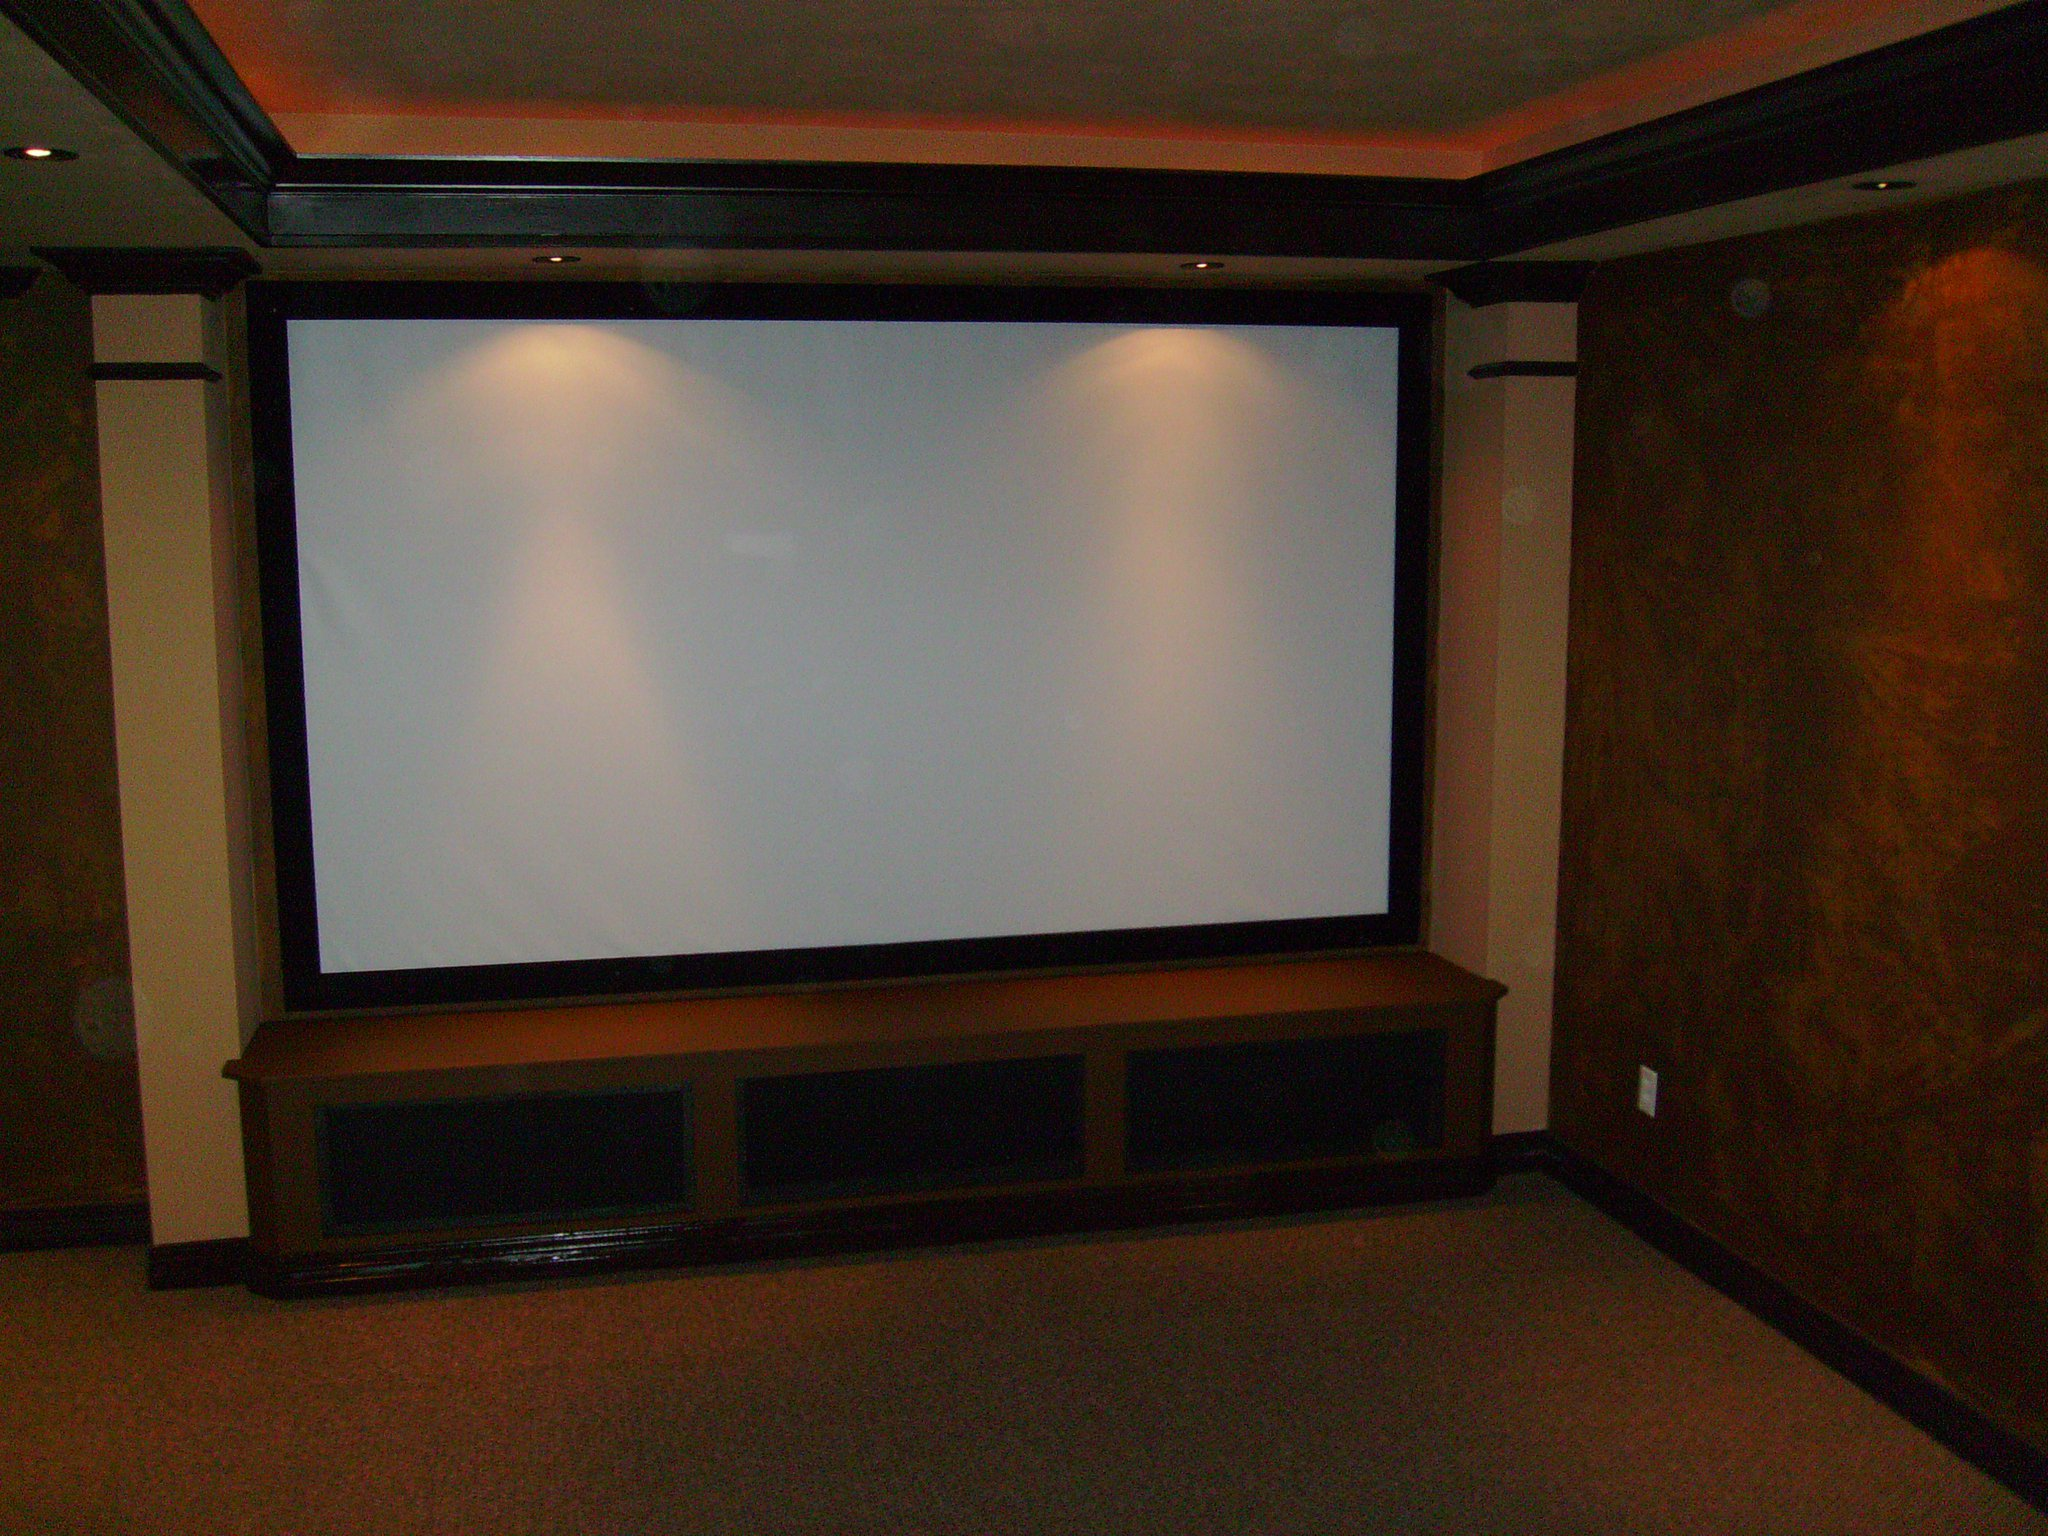 Media rooms with big screen tv interior design company for What is a media room